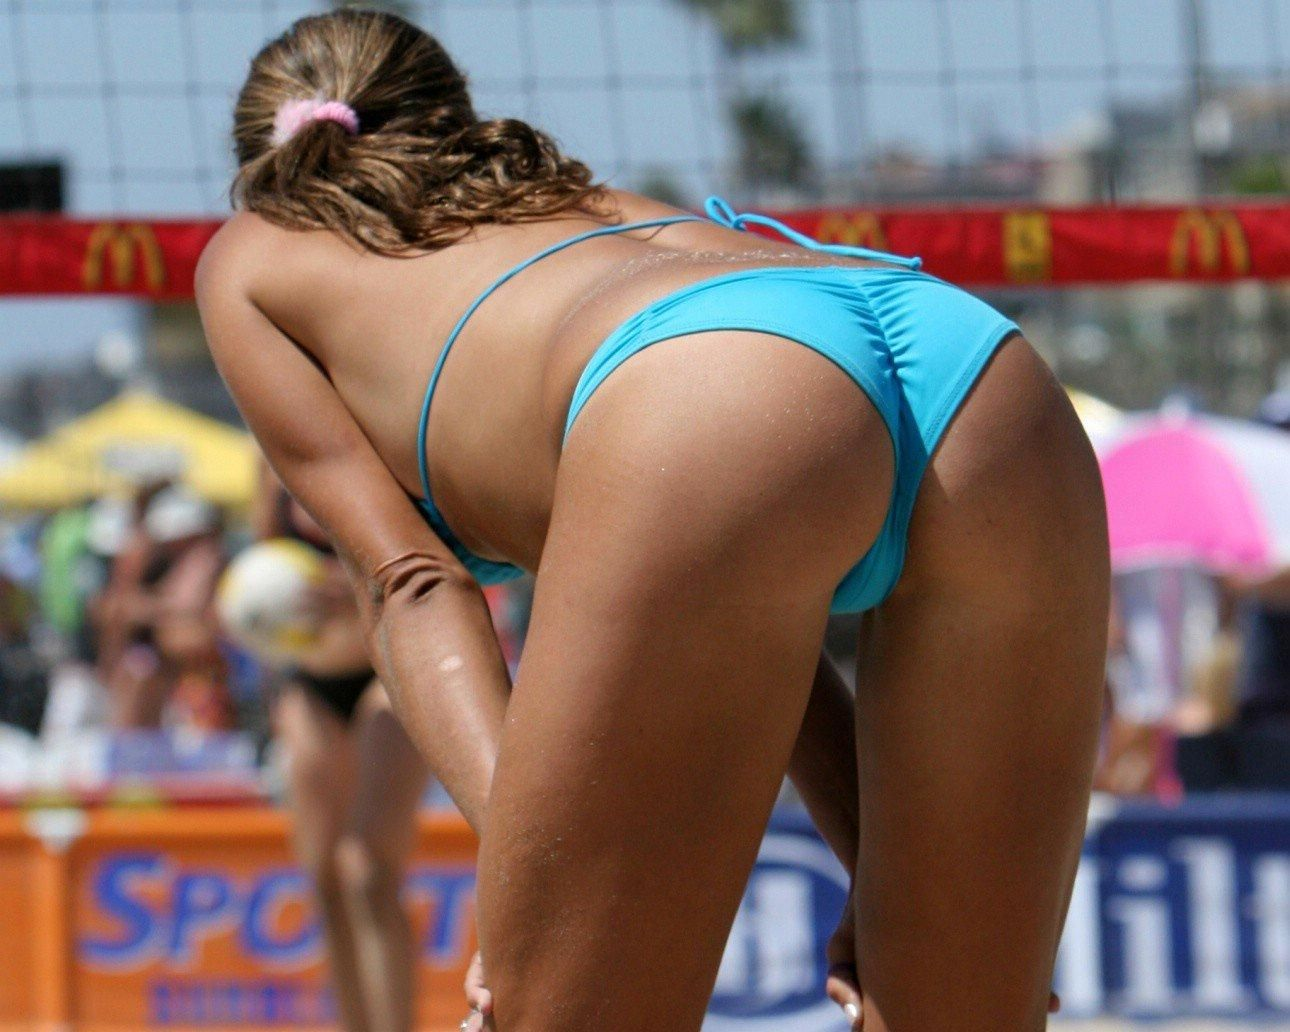 Hot girl volleyball topless charlies